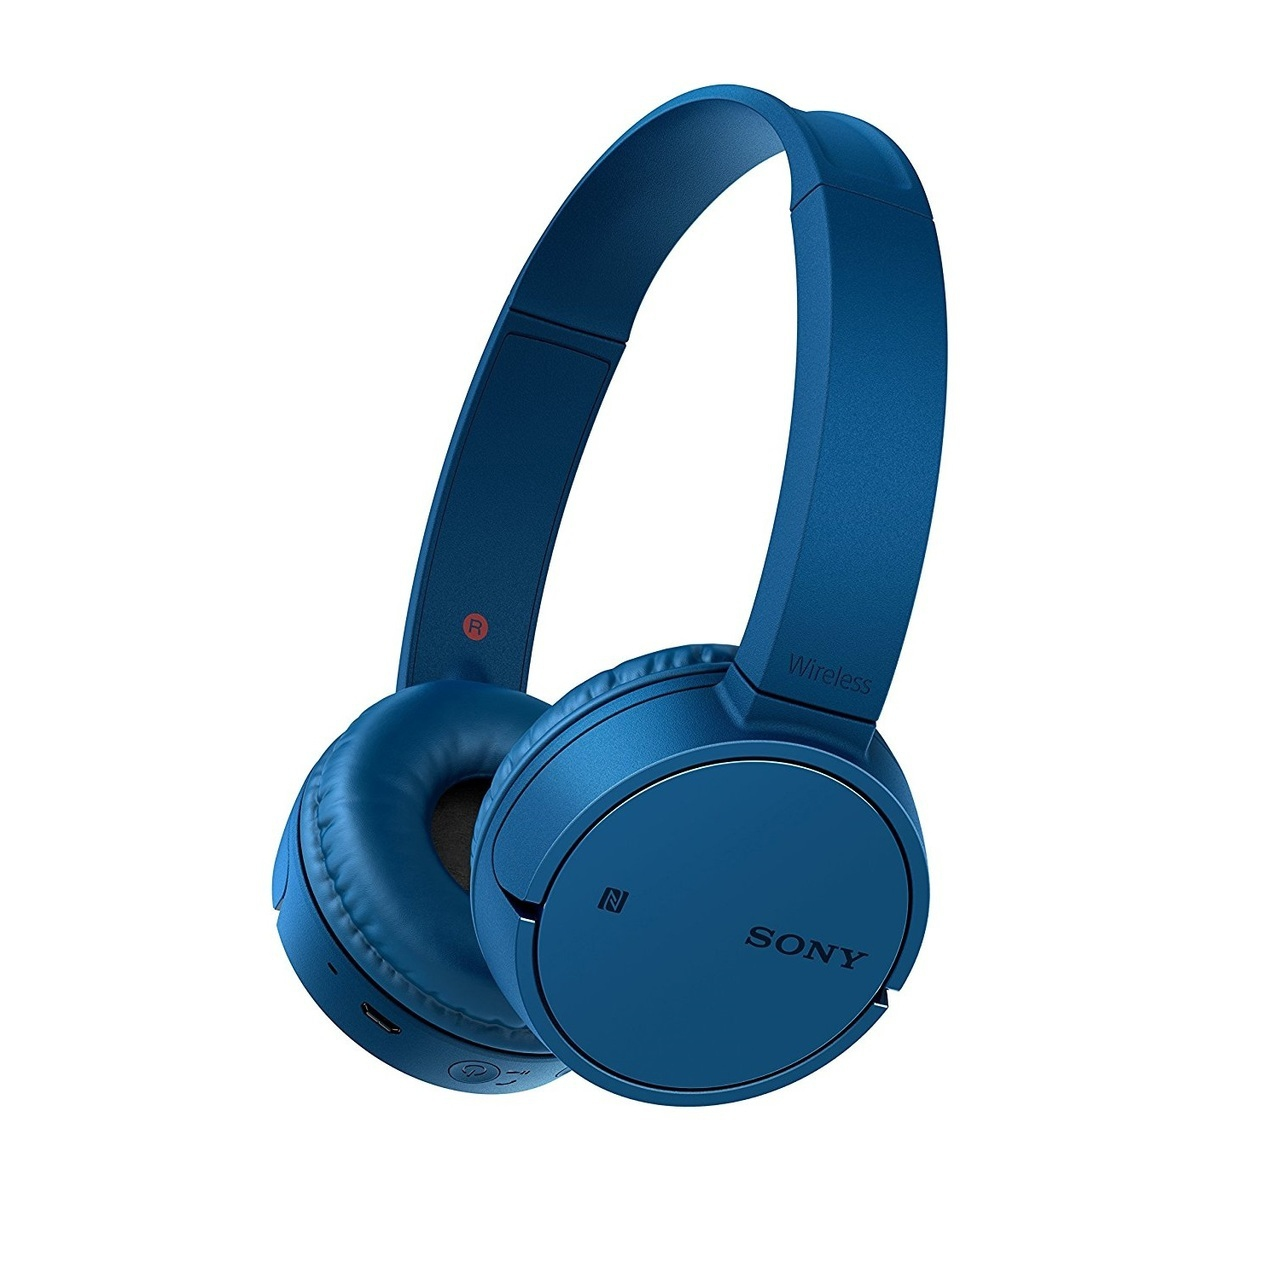 Sony WH-CH500 Wireless Bluetooth On-Ear Headphones Headsets Casual Mus